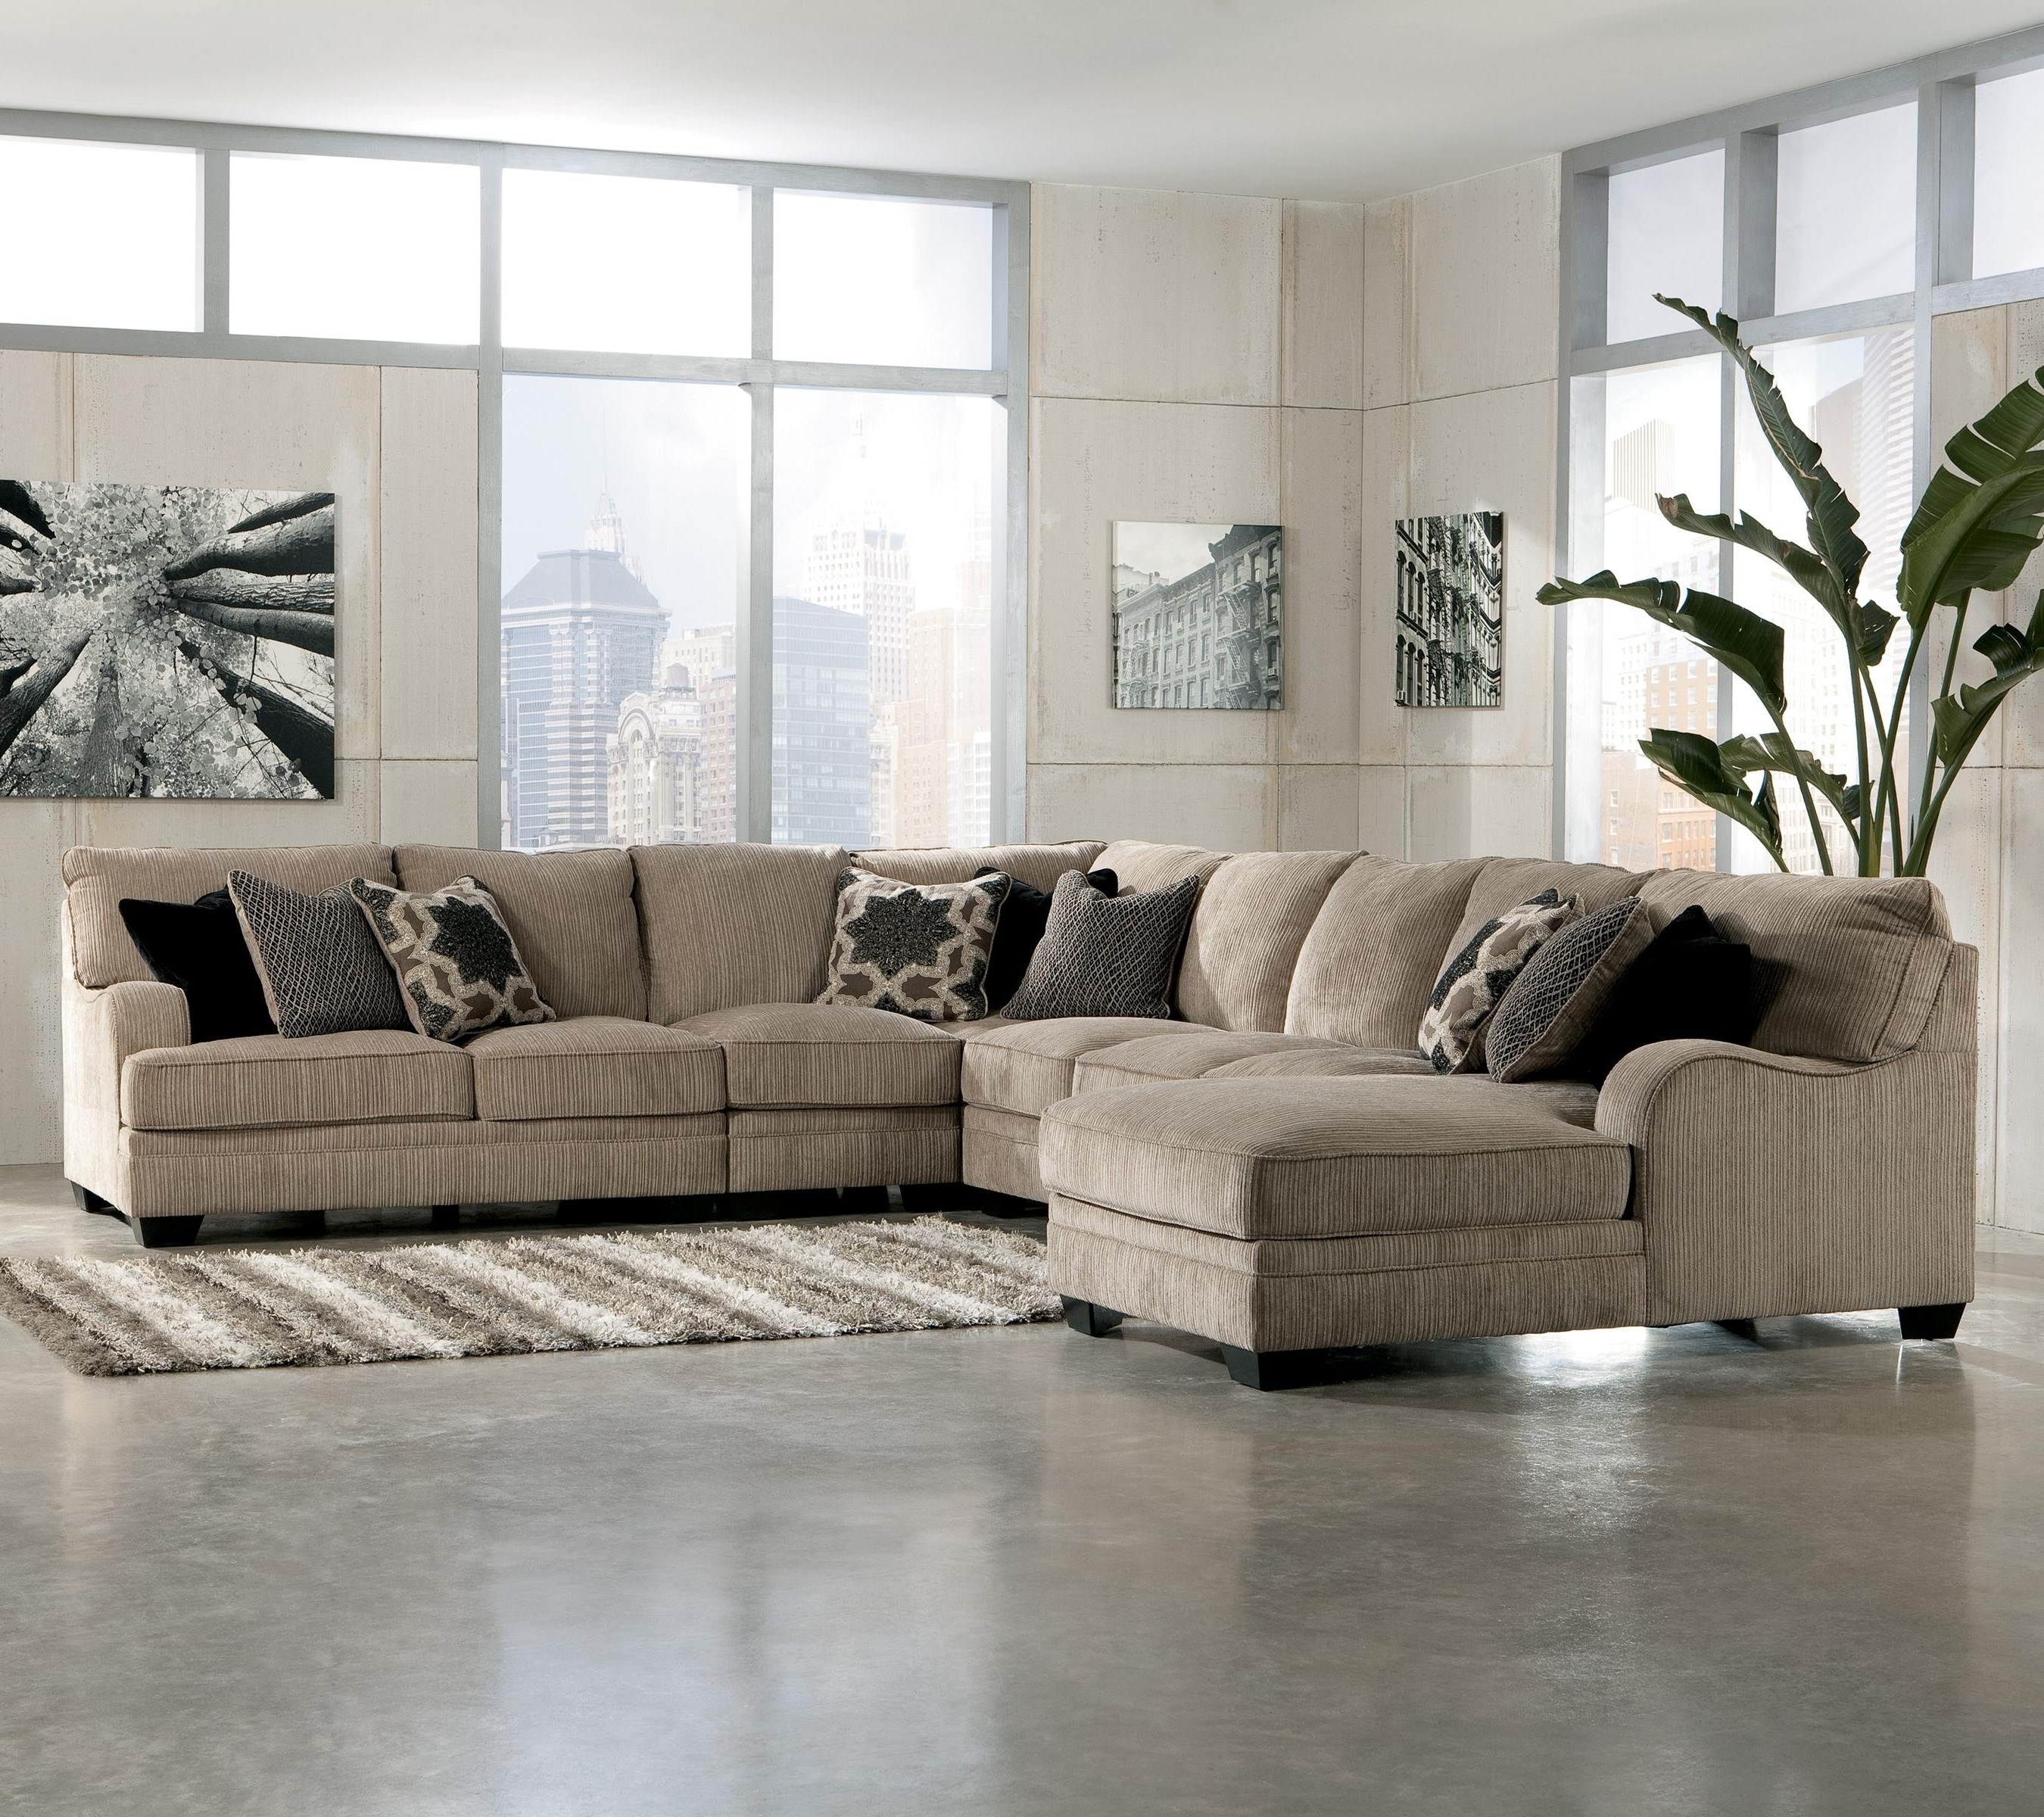 Living Room Sectional: Katisha 4 Piece Sectionalashley Intended For Current Sectional Sofas At Ashley Furniture (View 12 of 20)